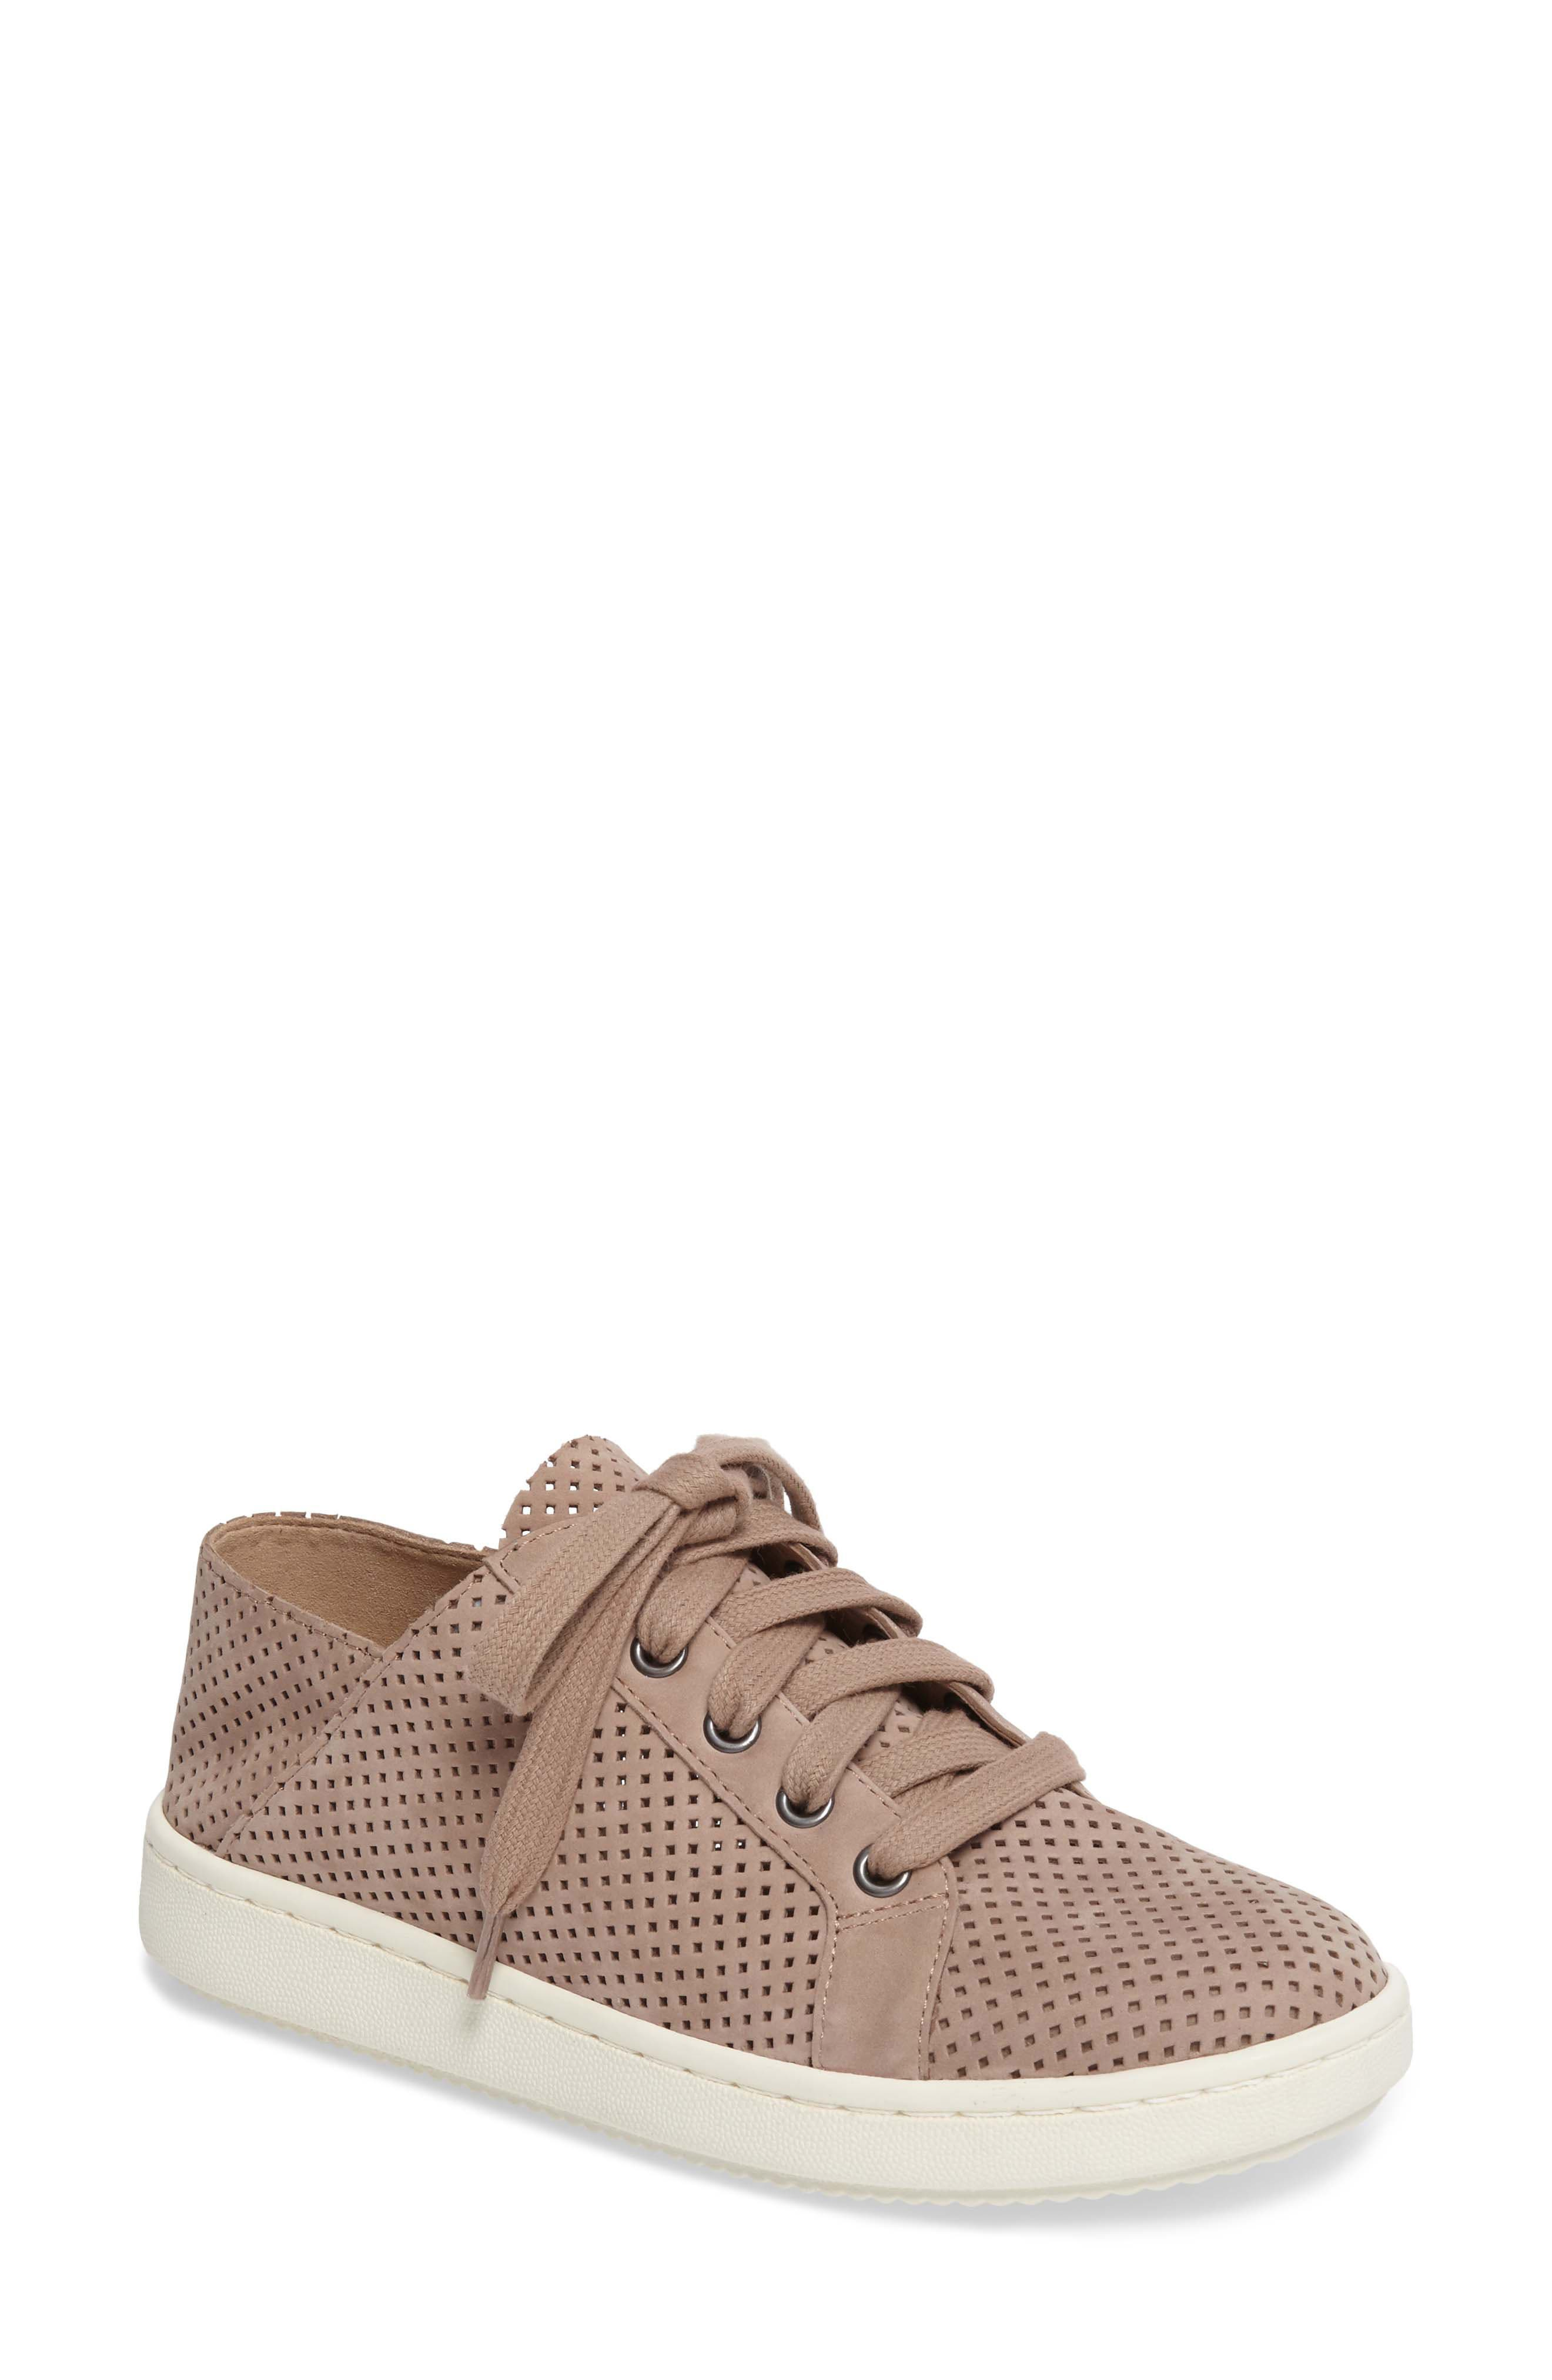 Clifton Perforated Sneaker,                         Main,                         color, 250